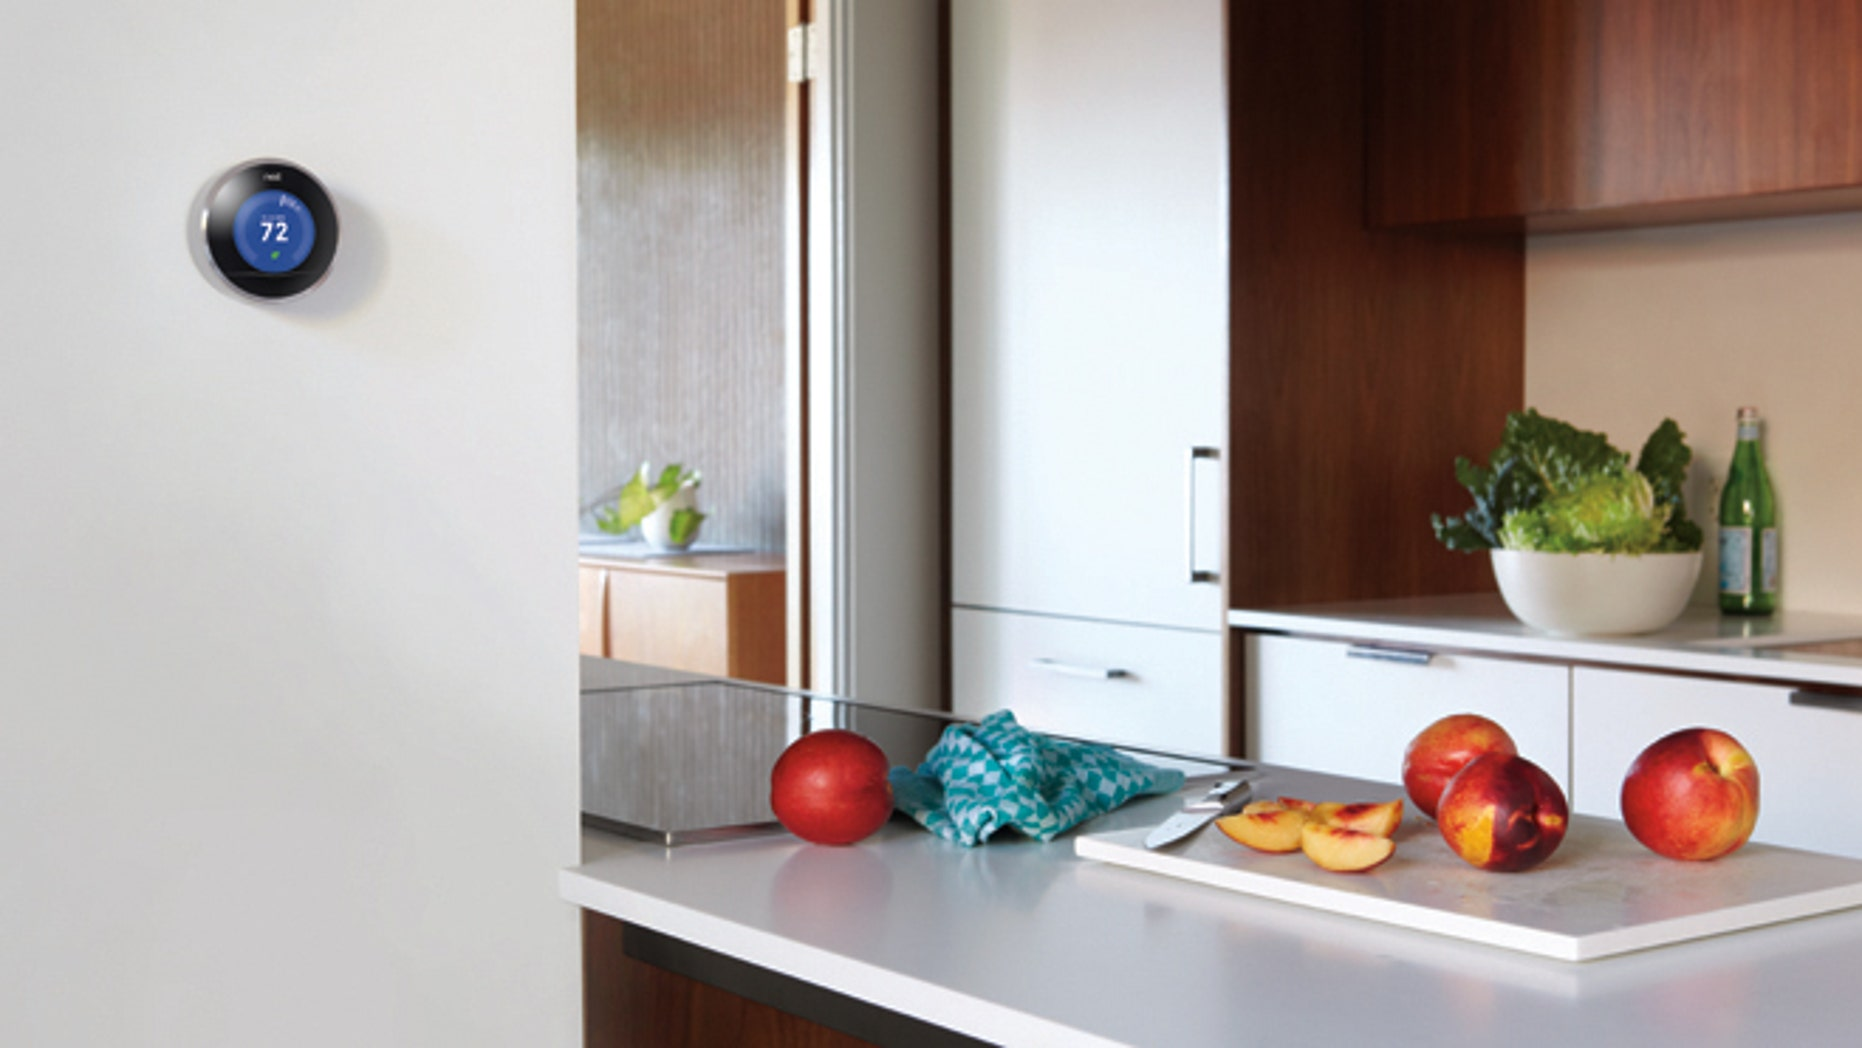 A Nest smart thermostat is seen on the wall of a kitchen.